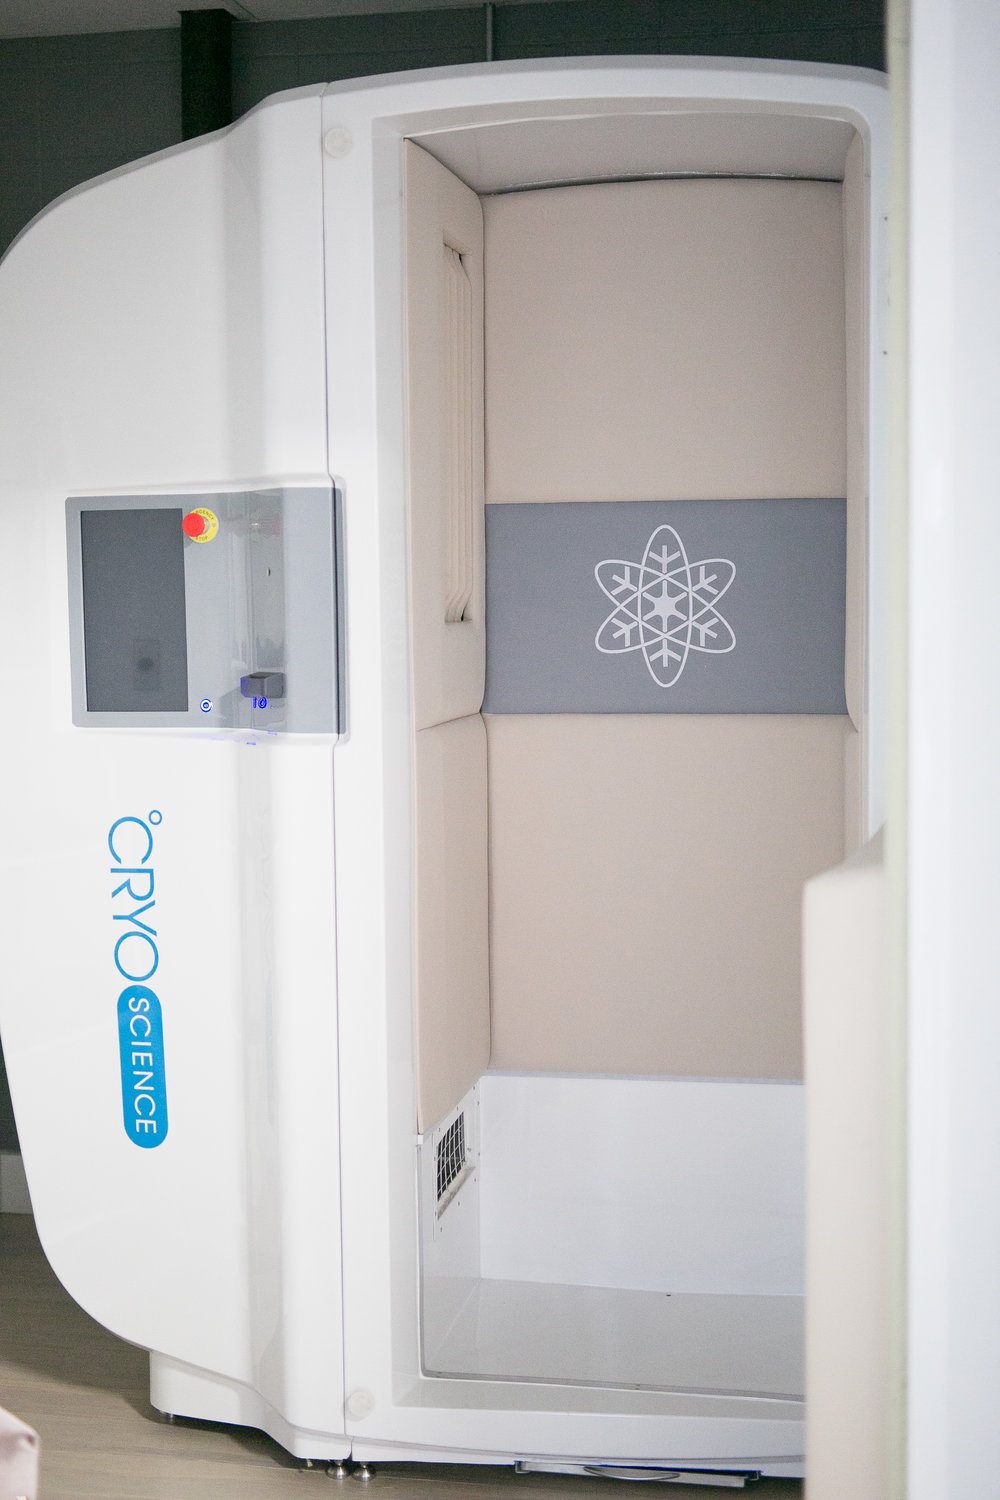 STAXCryo treatment chamber anti-aging